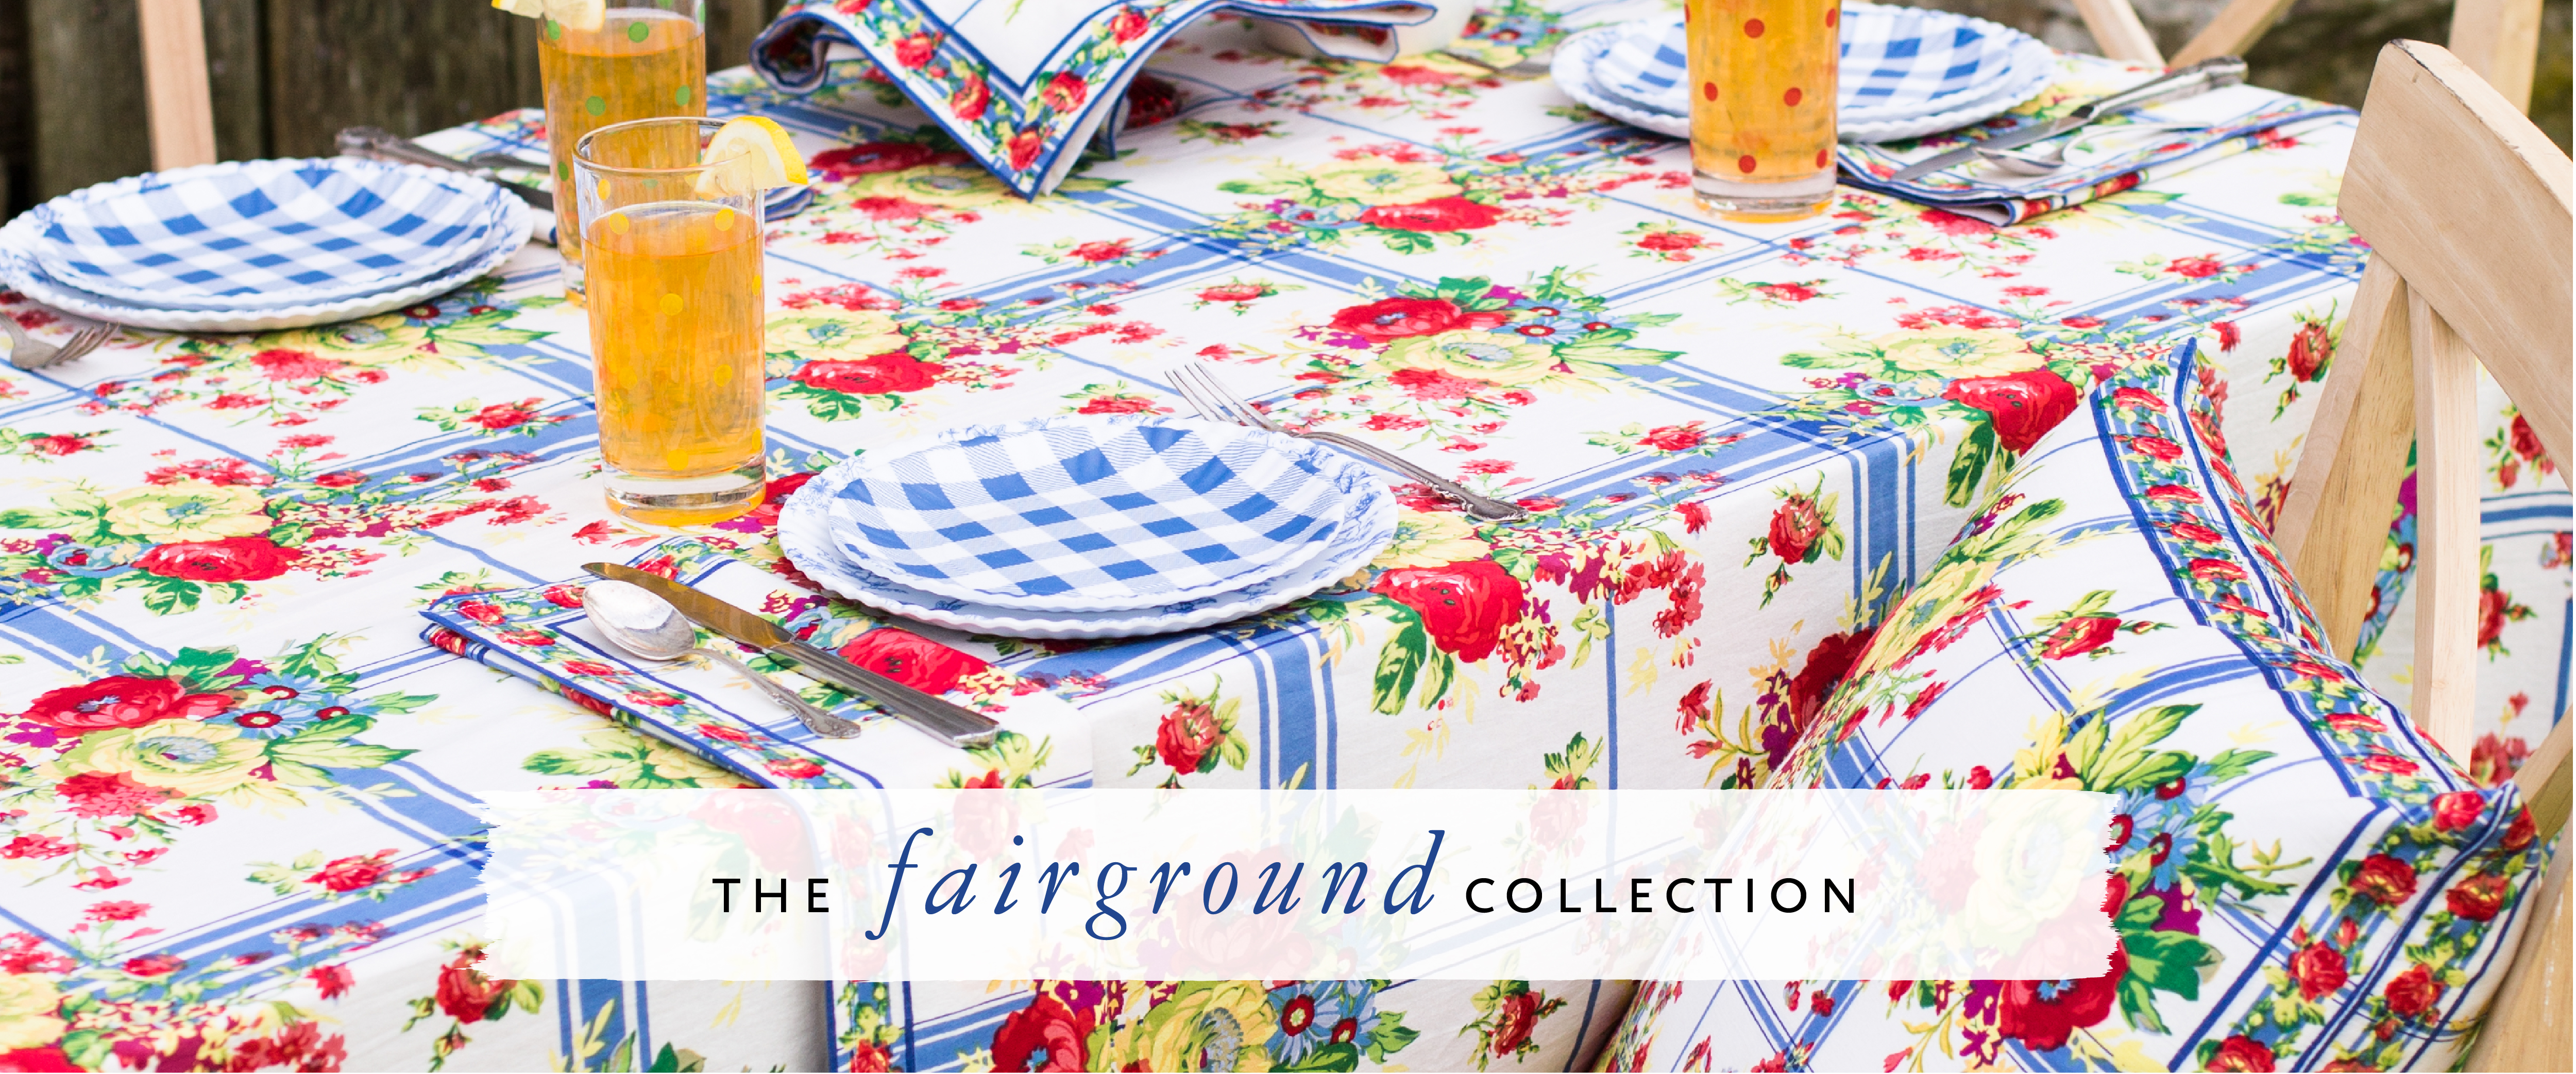 The Fairground Collection